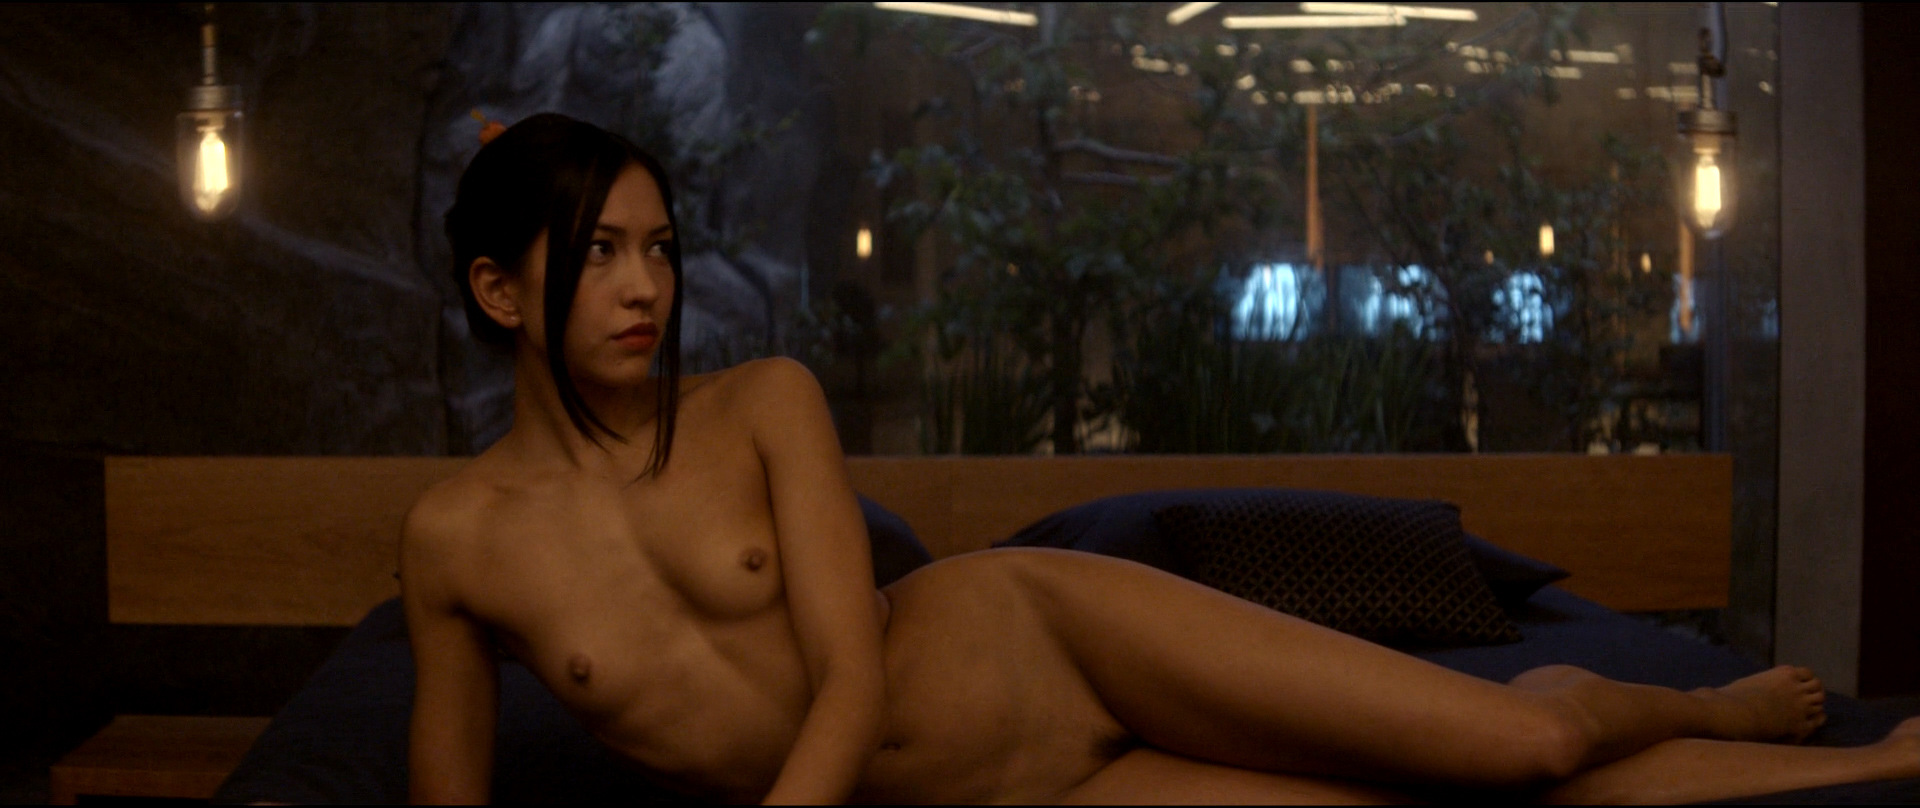 Asian movie stars nude